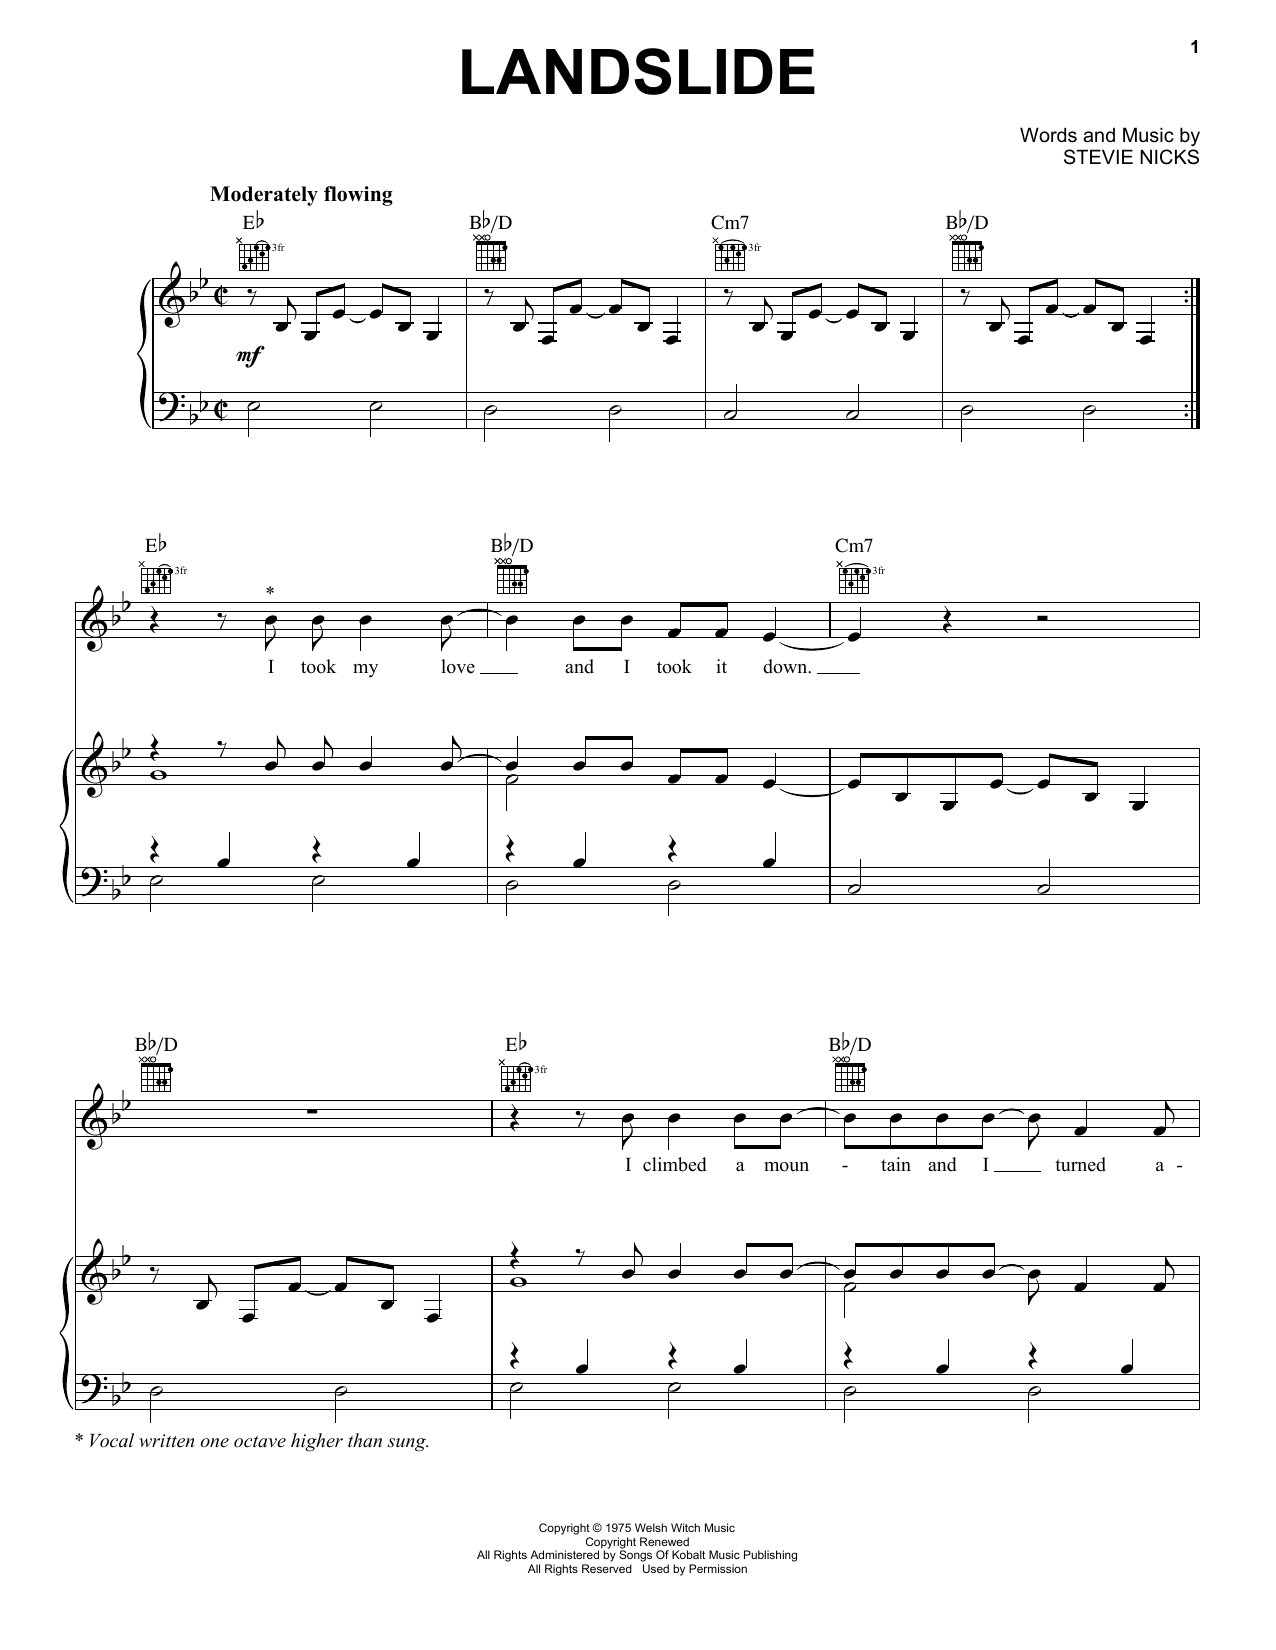 Landslide Sheet Music Direct